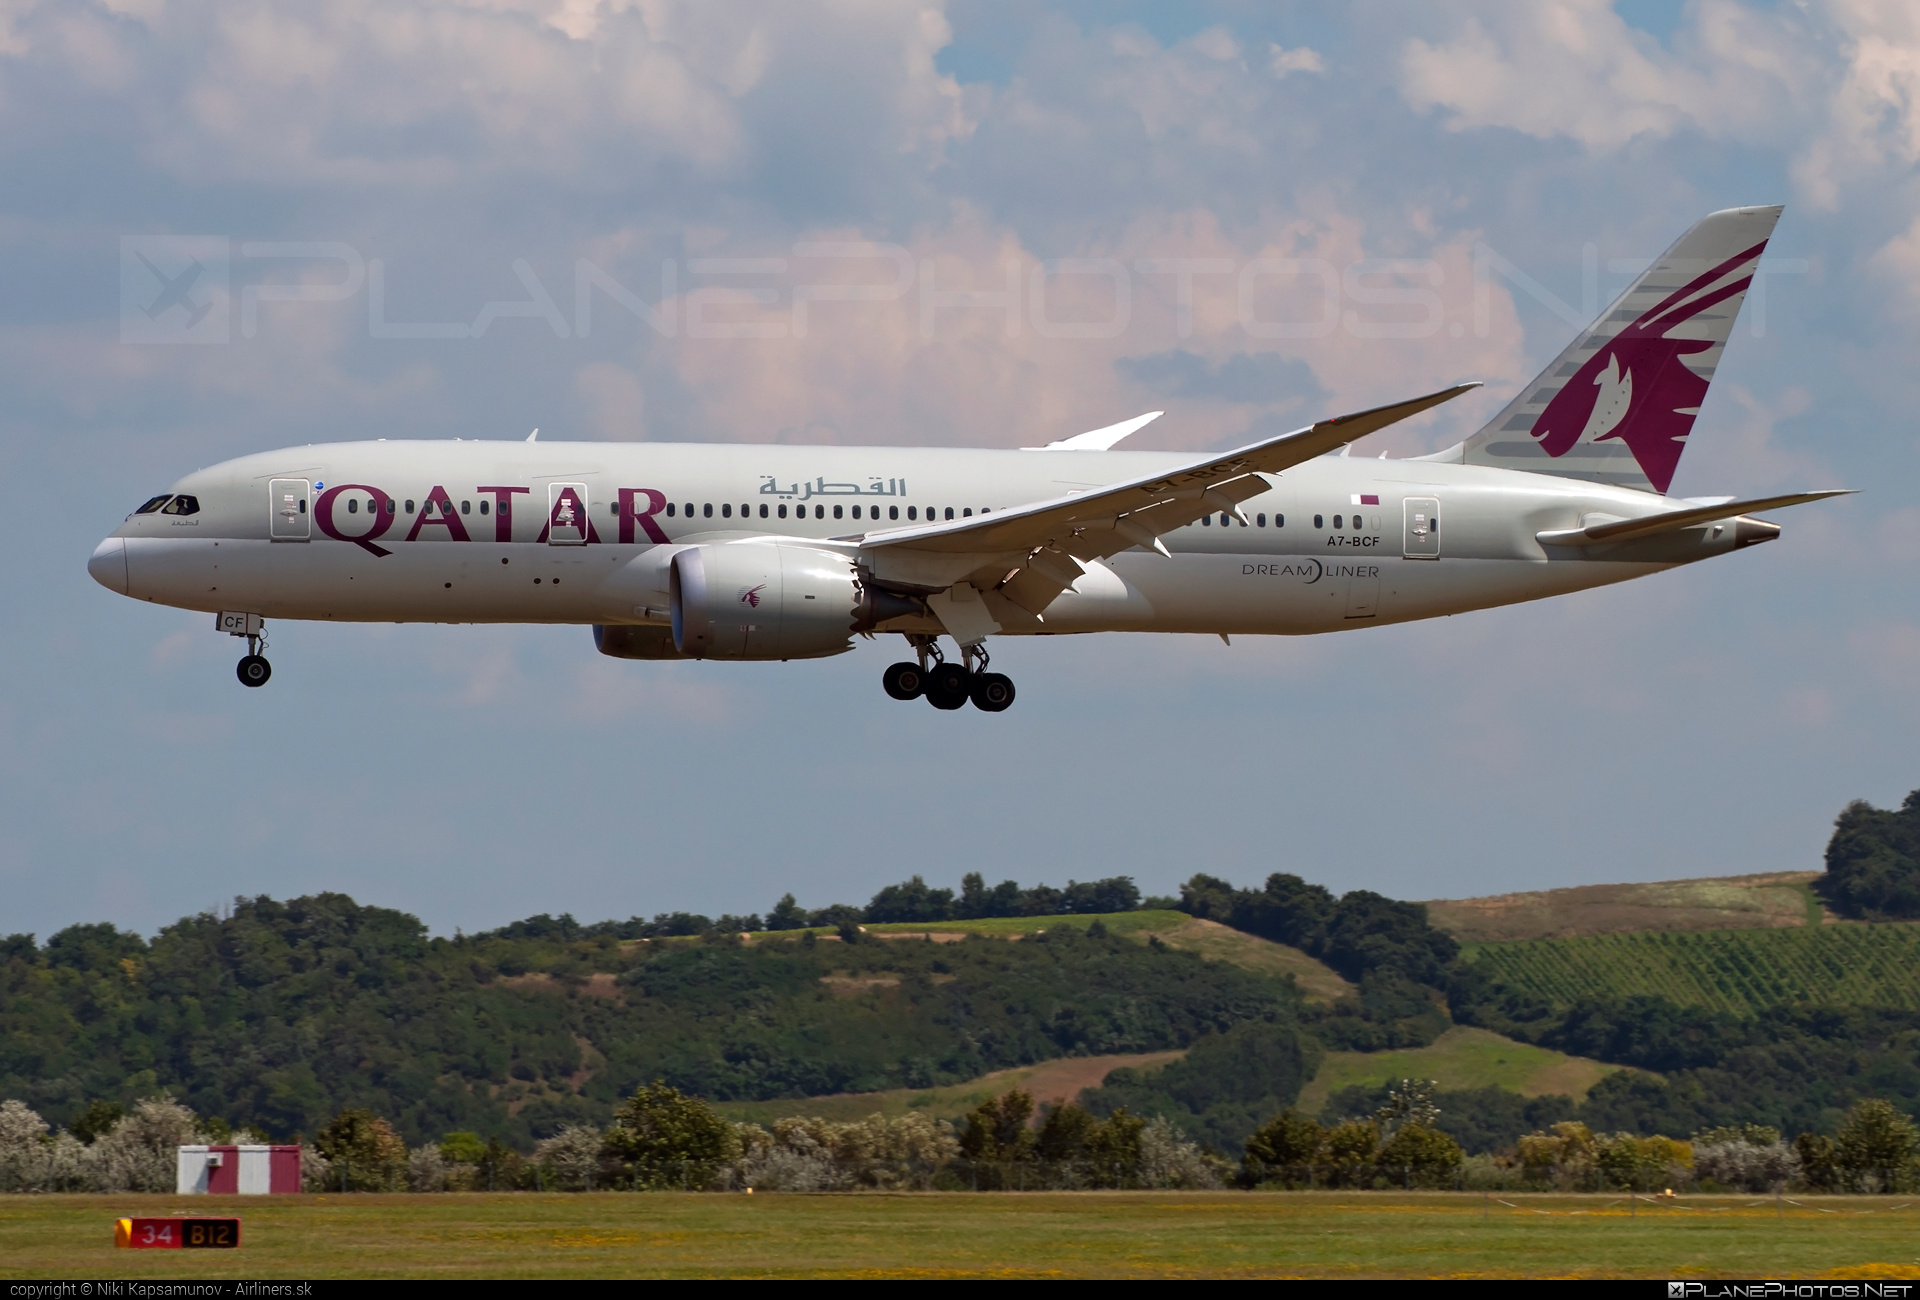 Boeing 787-8 Dreamliner - A7-BCF operated by Qatar Airways #b787 #boeing #boeing787 #dreamliner #qatarairways